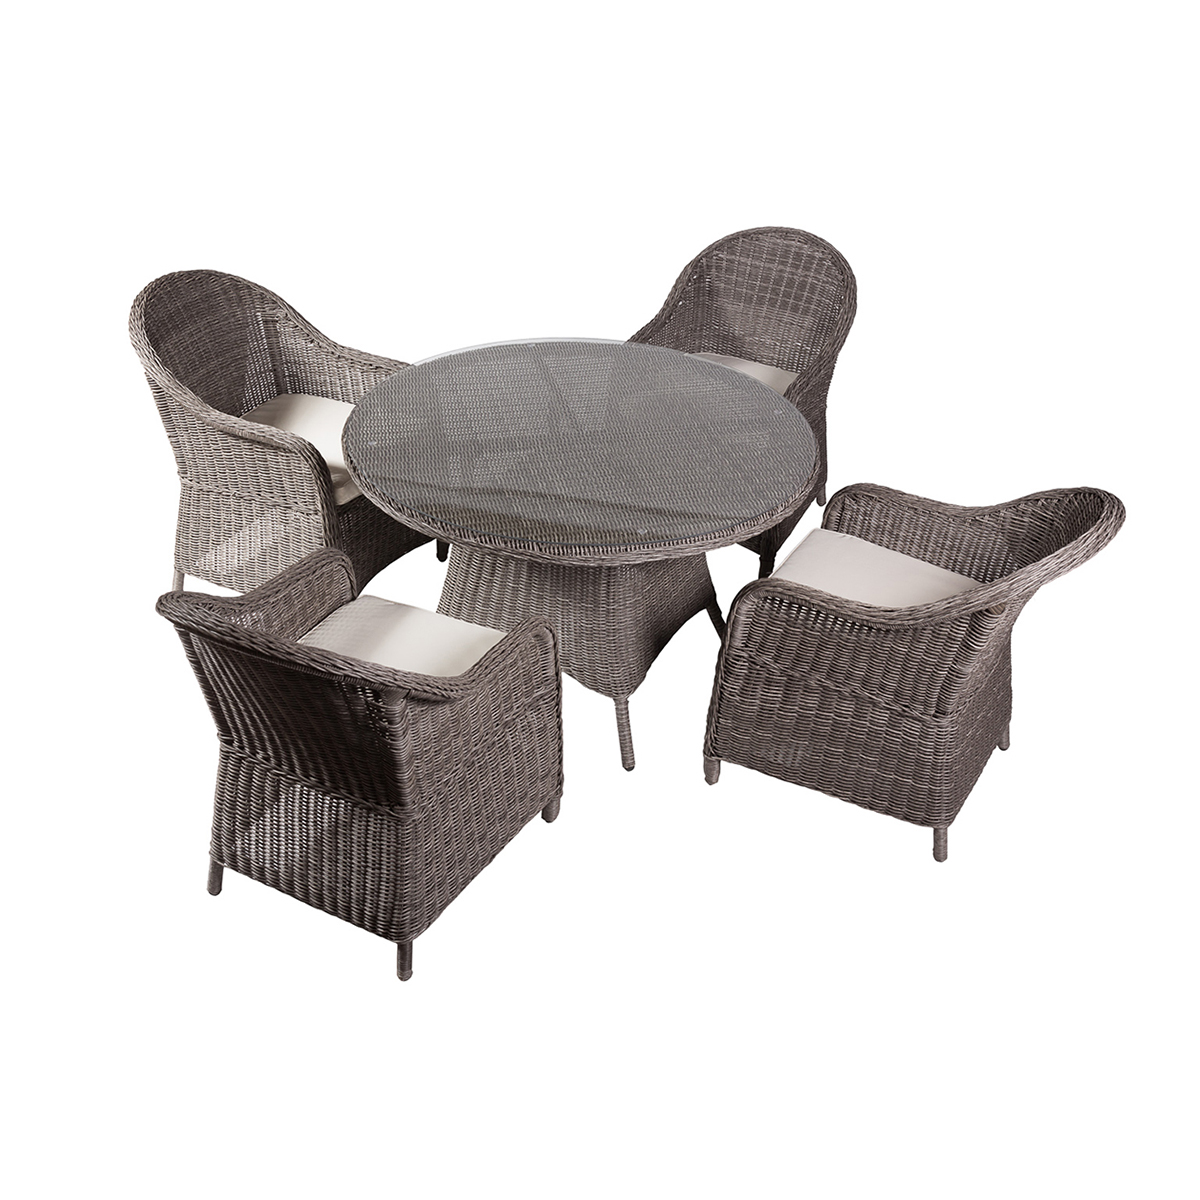 Table de jardin ronde en plastique topiwall for Salon de jardin plastique gris